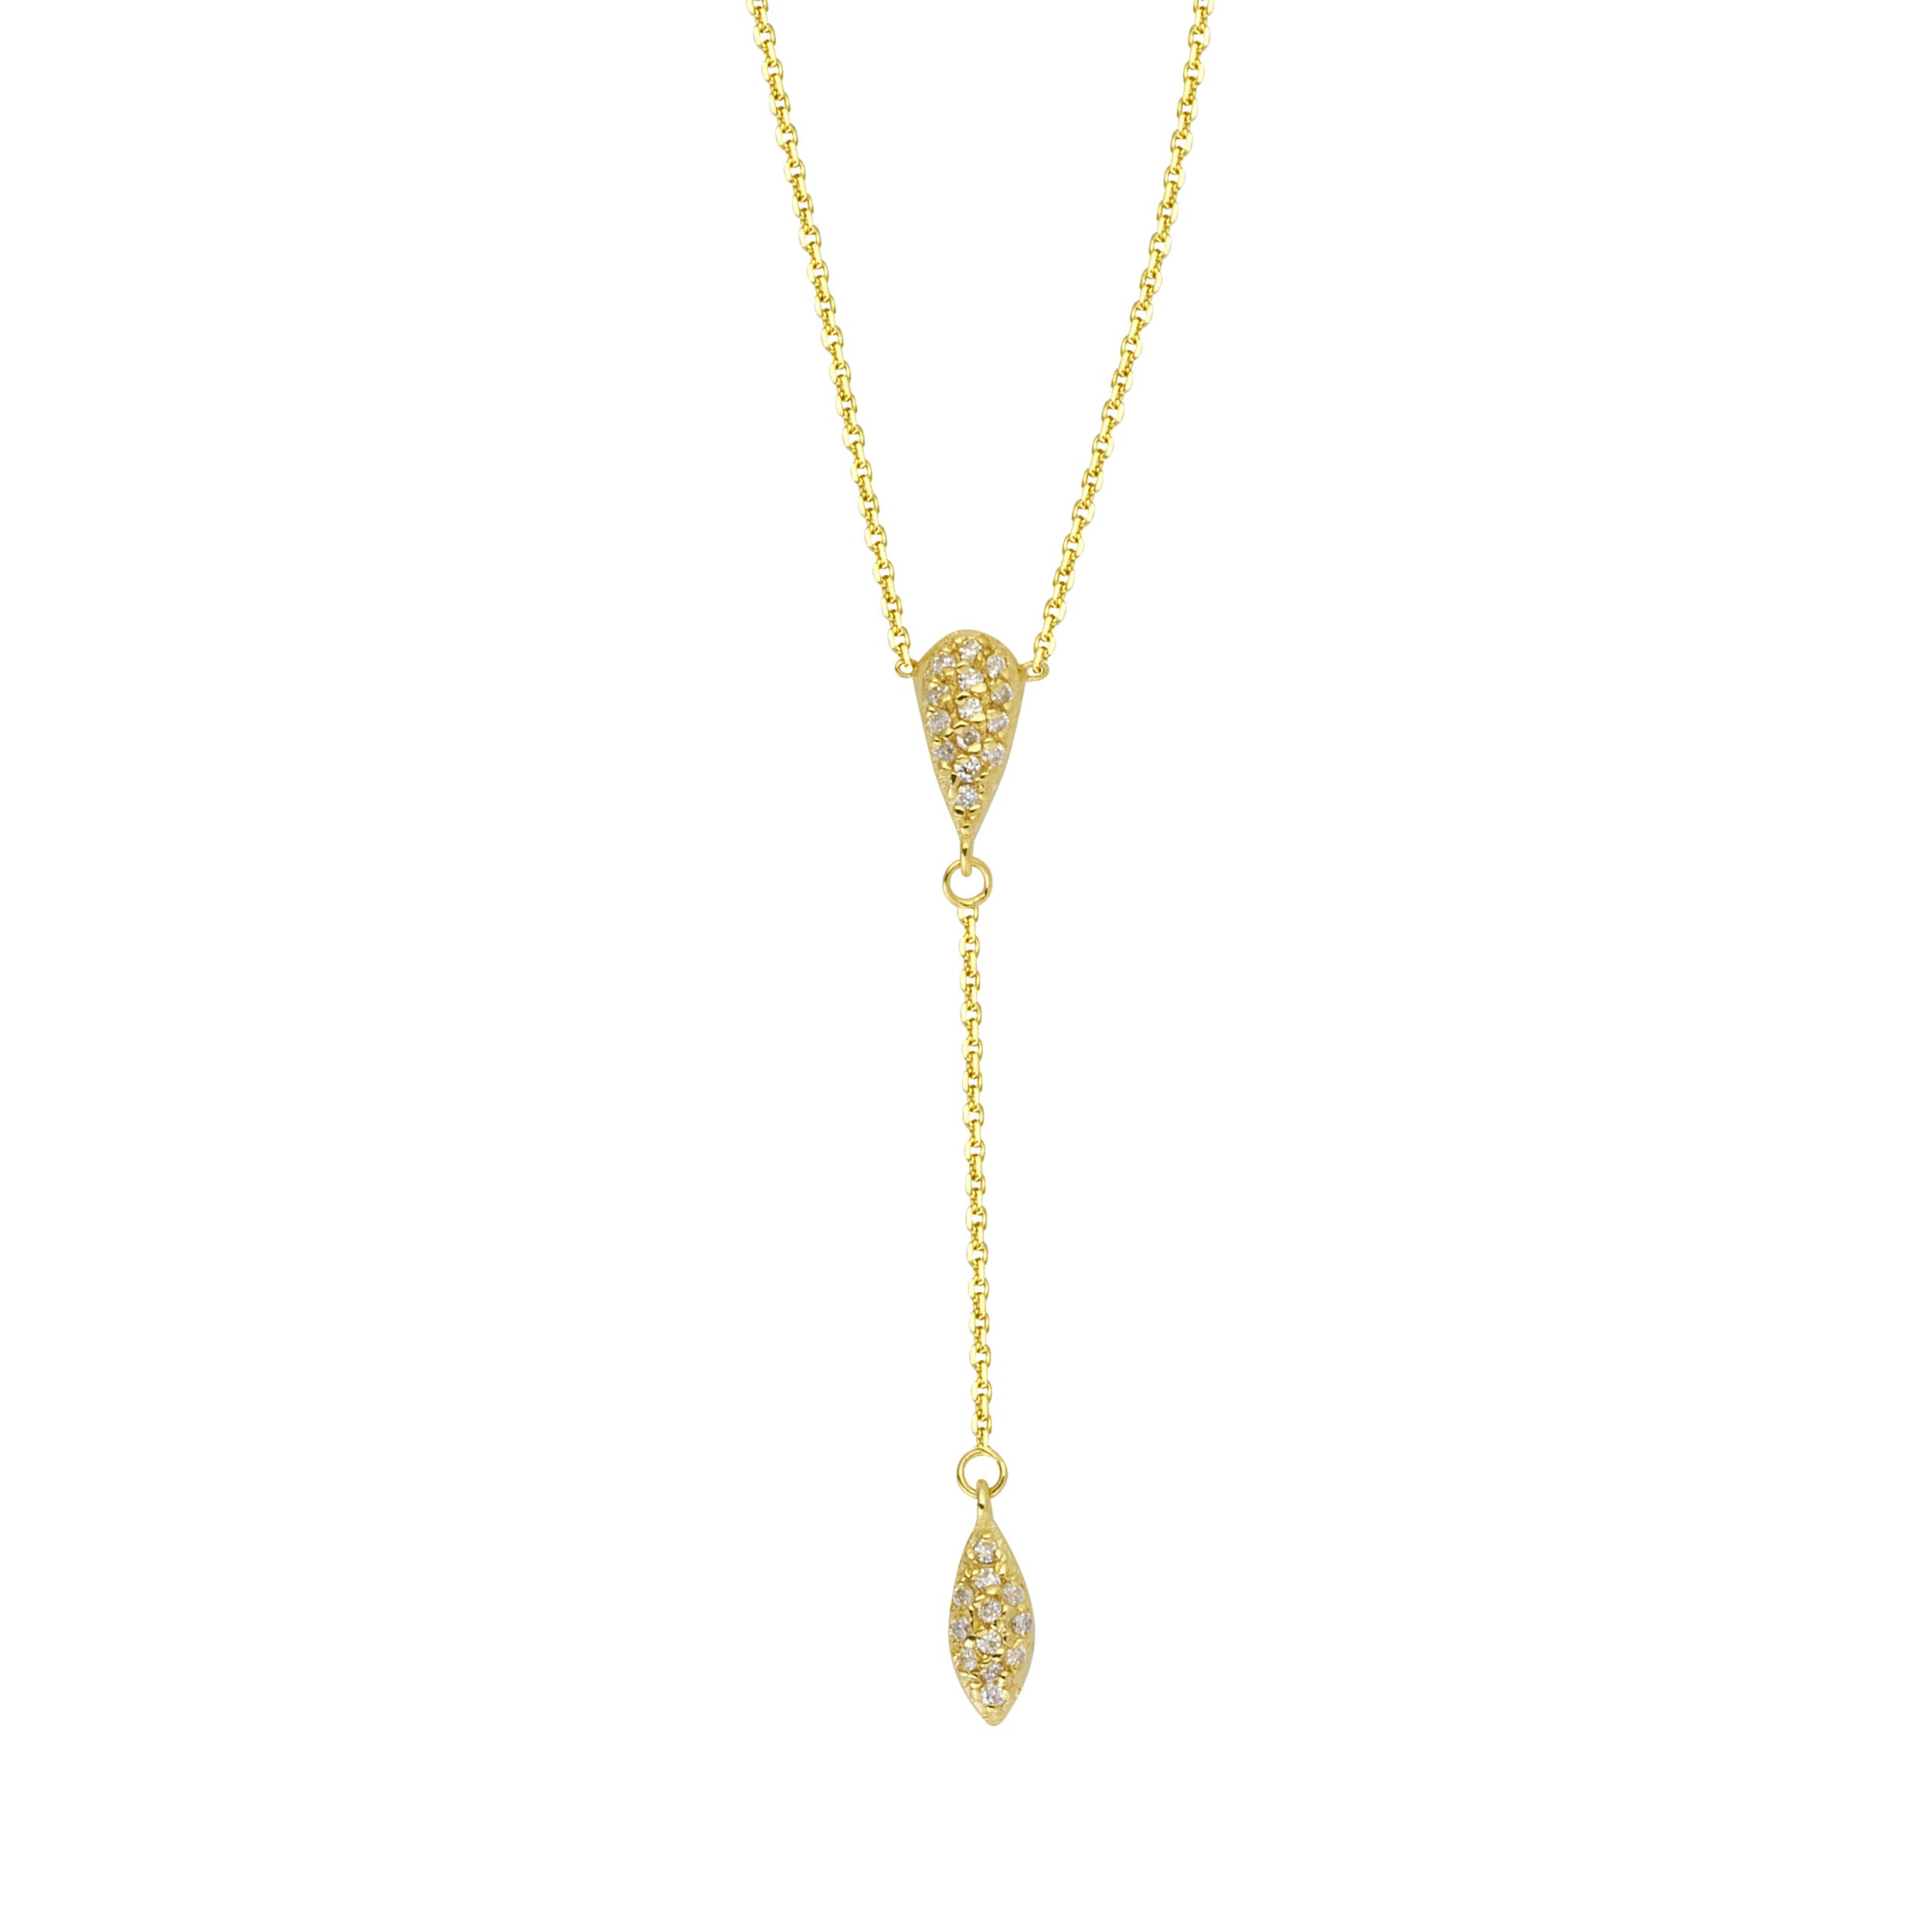 14k Yellow Gold Diamond Accented Y-shape Lariat Style Necklace with Drop